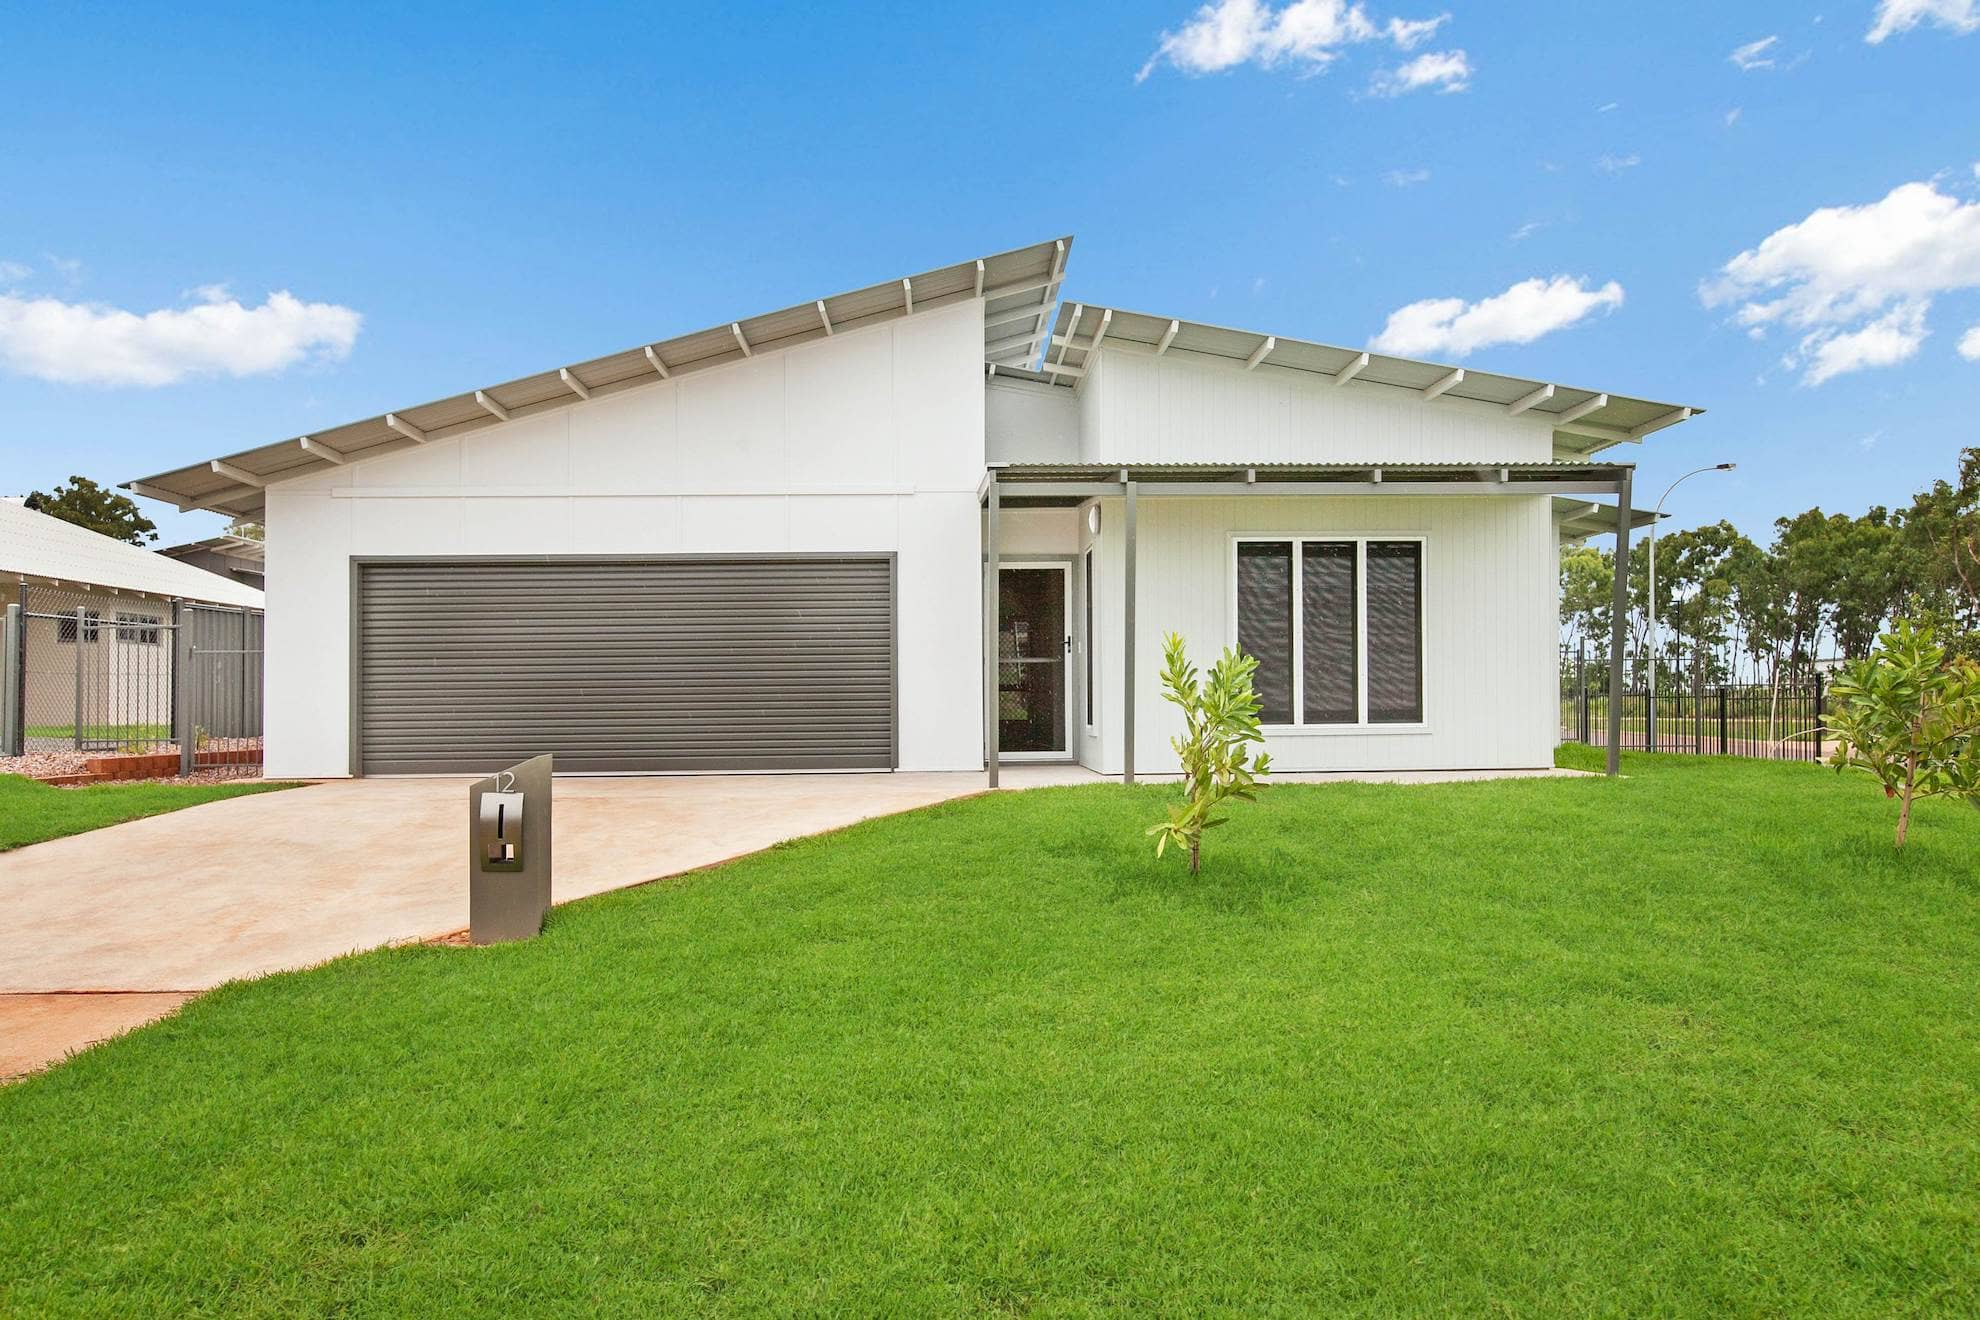 Defence Housing projects by mdesign, a building design practice that operates on the Sunshine Coast.